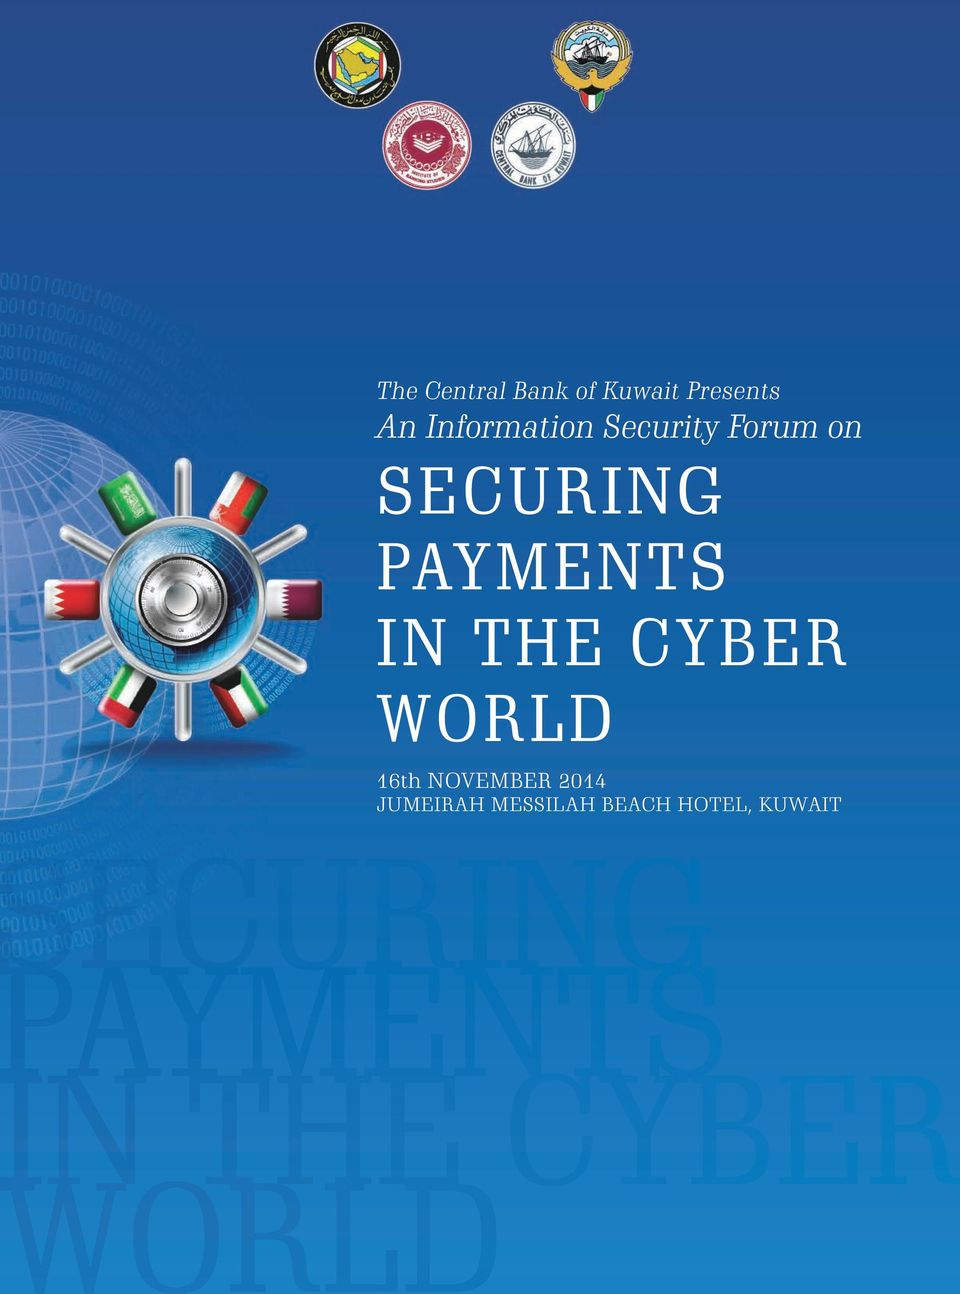 PAYMENTS IN THE CYBER WORLD 16th